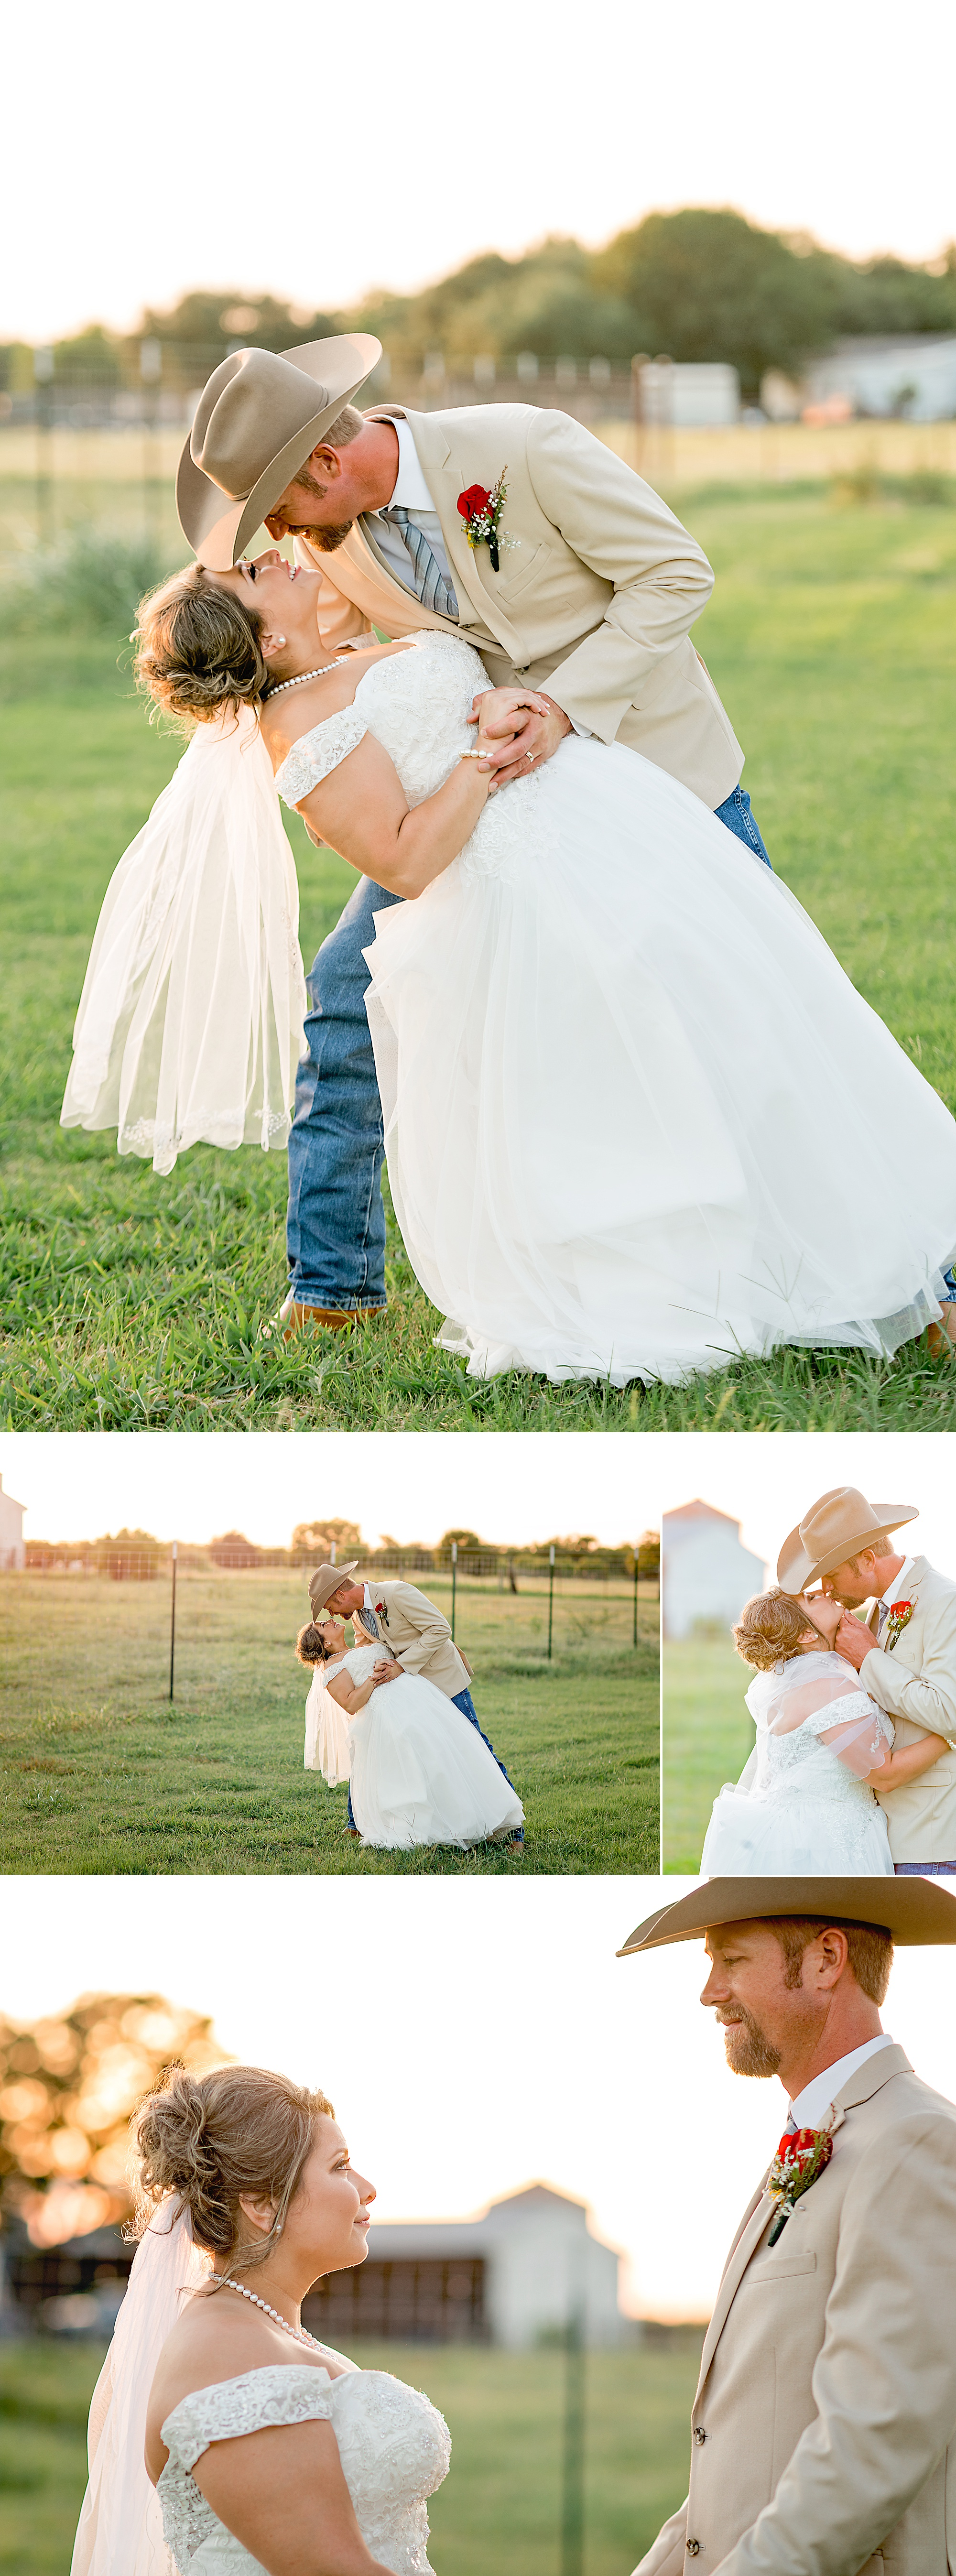 Wedding-Photographer-Rustic-Sunflower-theme-Texas-Carly-Barton-Photography_0119.jpg